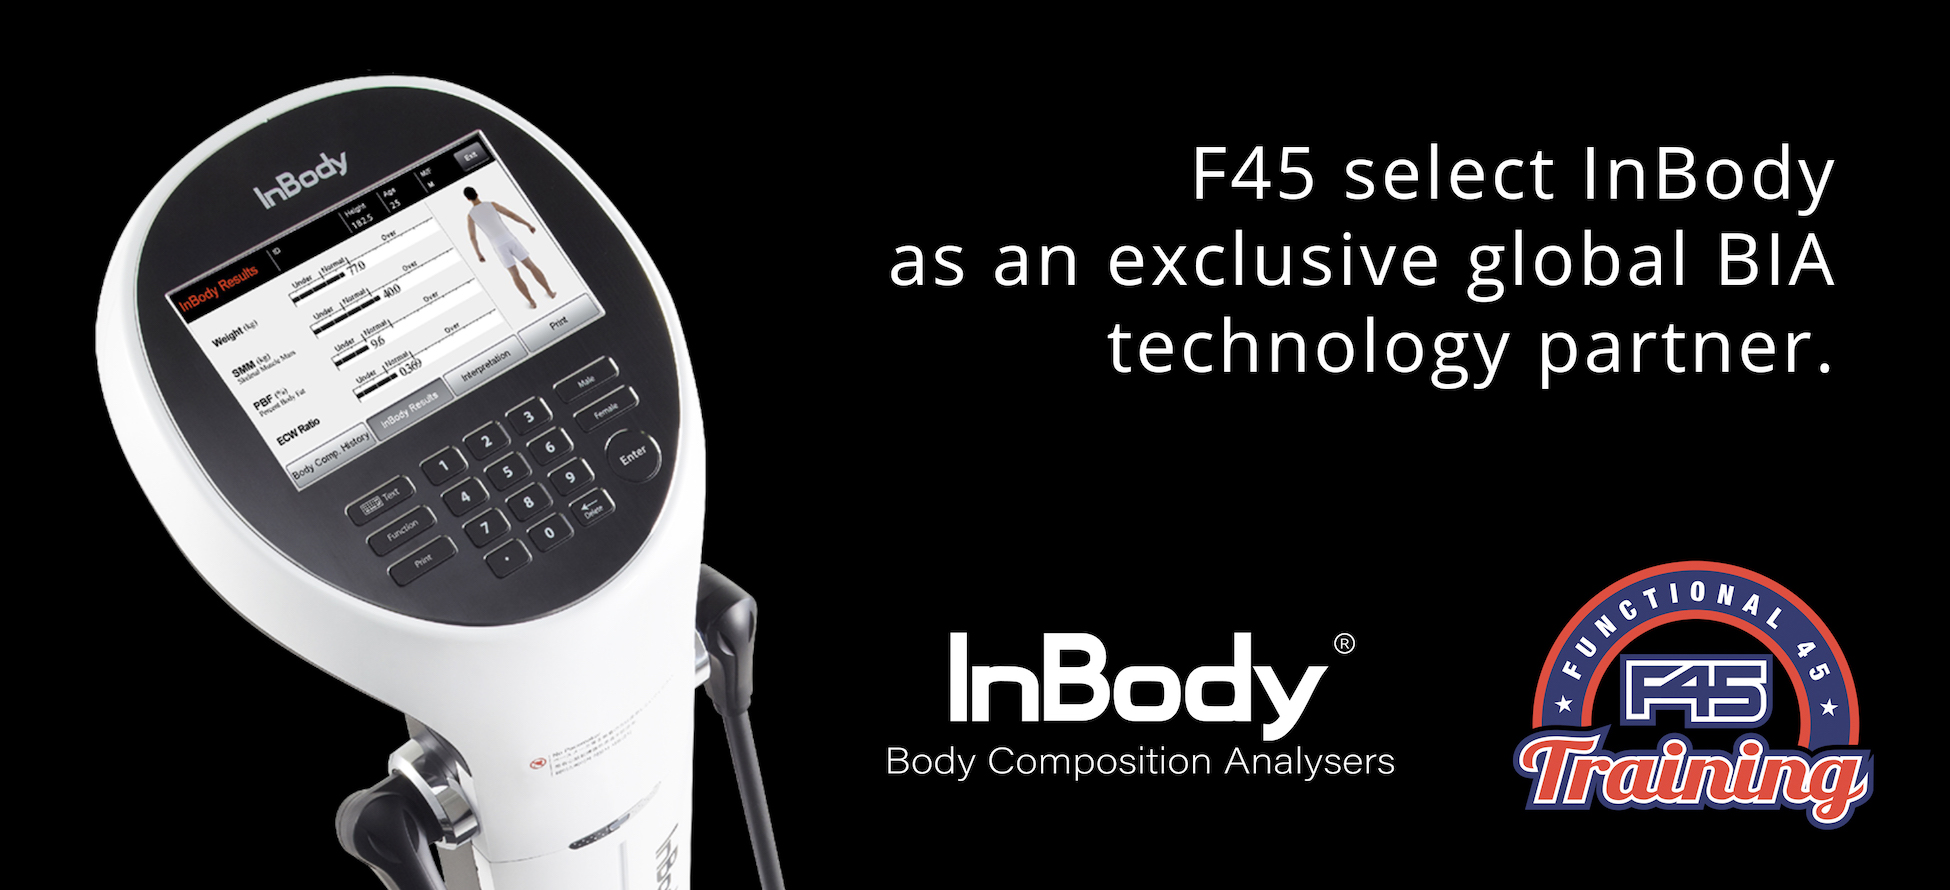 F45 select InBody as an exclusive global BIA device partner.